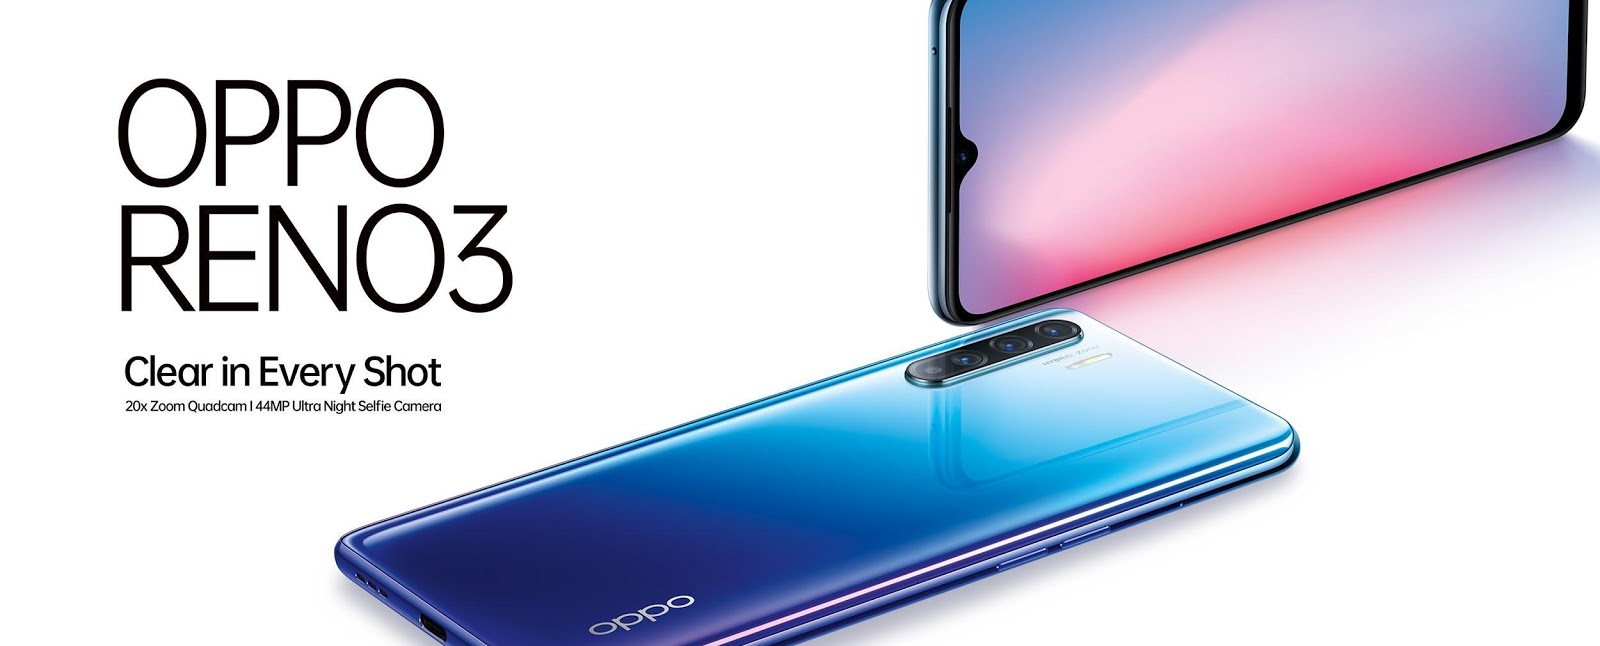 the-newly-launched-oppo-reno3-series-stands-out-in-all-lighting-conditions-delivering-clear-photos-in-every-shot